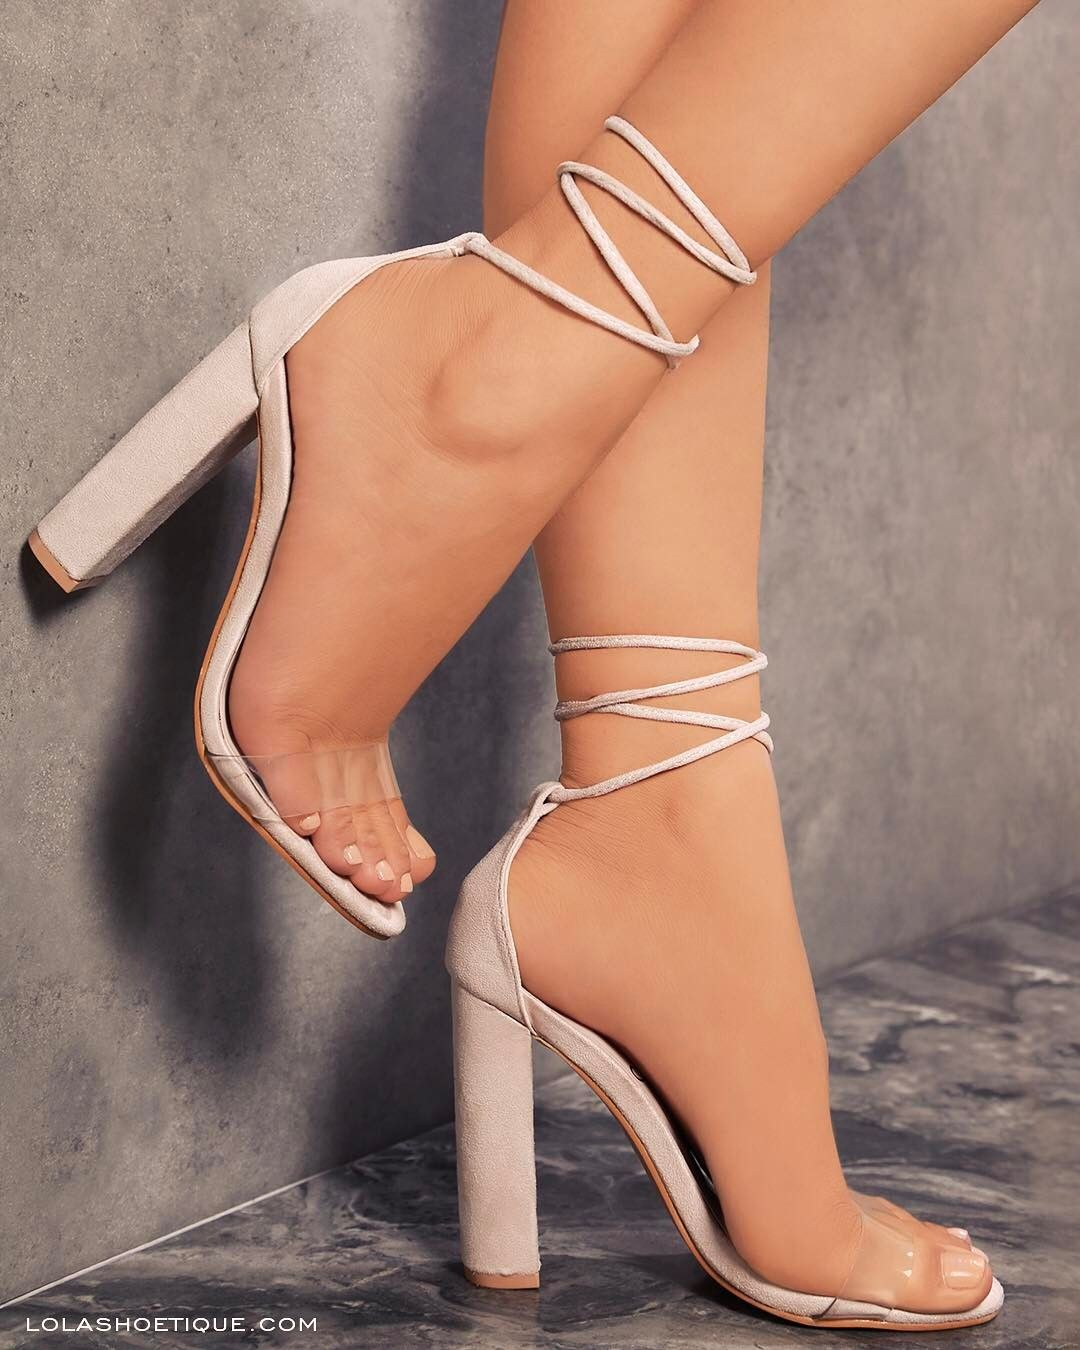 340ad65abbe8 ... strappy sandals and platform styles. Lola Shoetique ( lolashoetique) on  Instagram ✨ Style Name - EASY IN THE EYES""